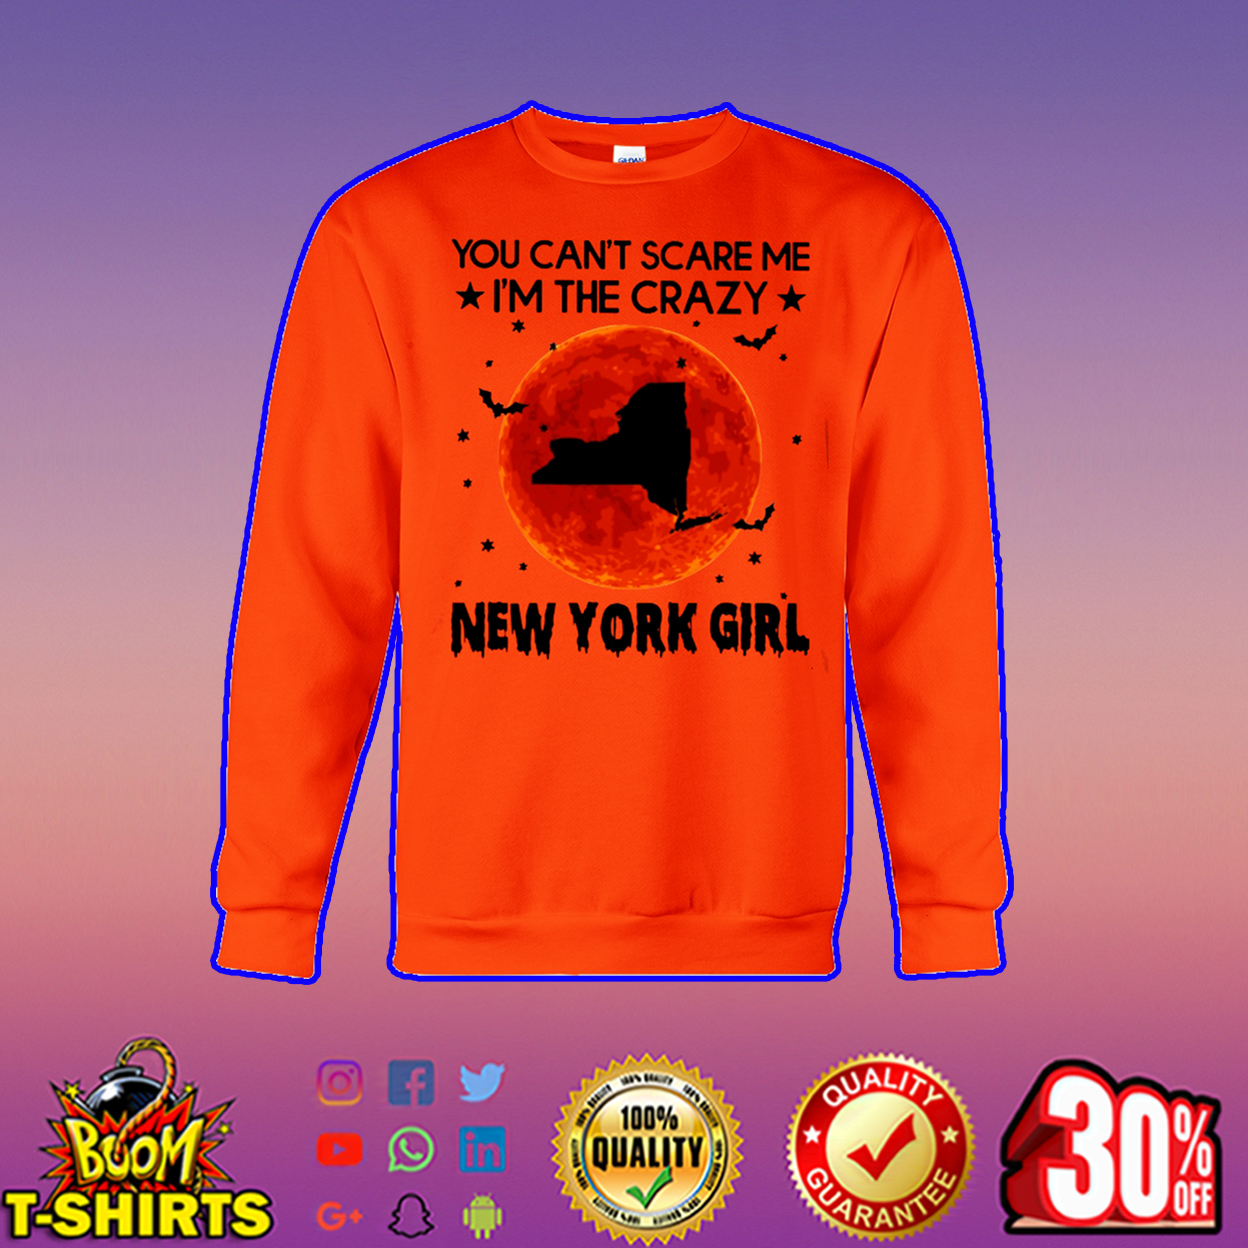 You can't scare me I'm the crazy New York girl sweatshirt